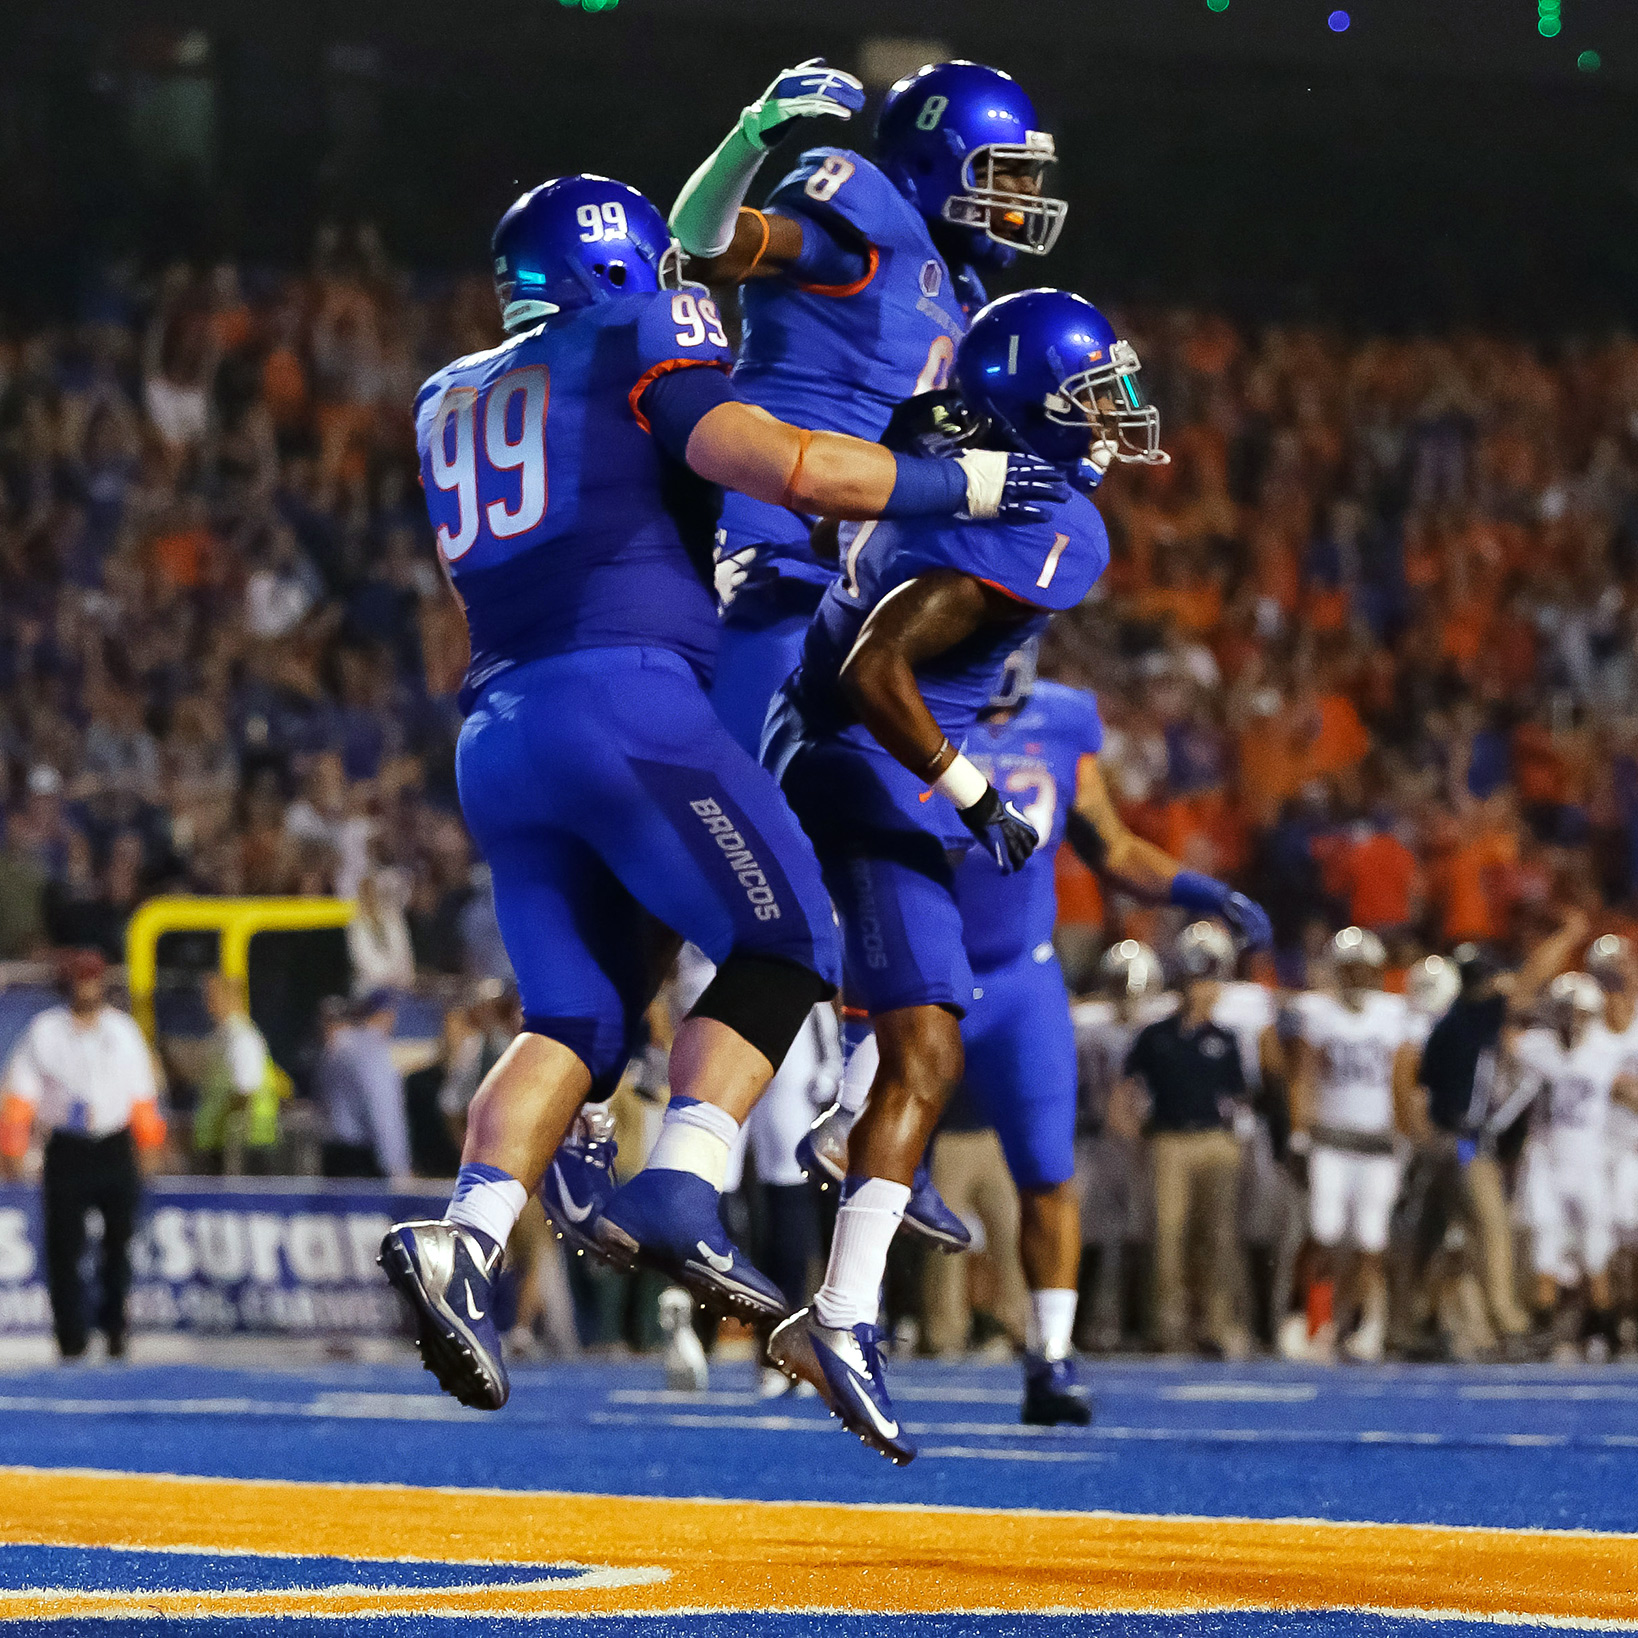 No. 21 Boise State